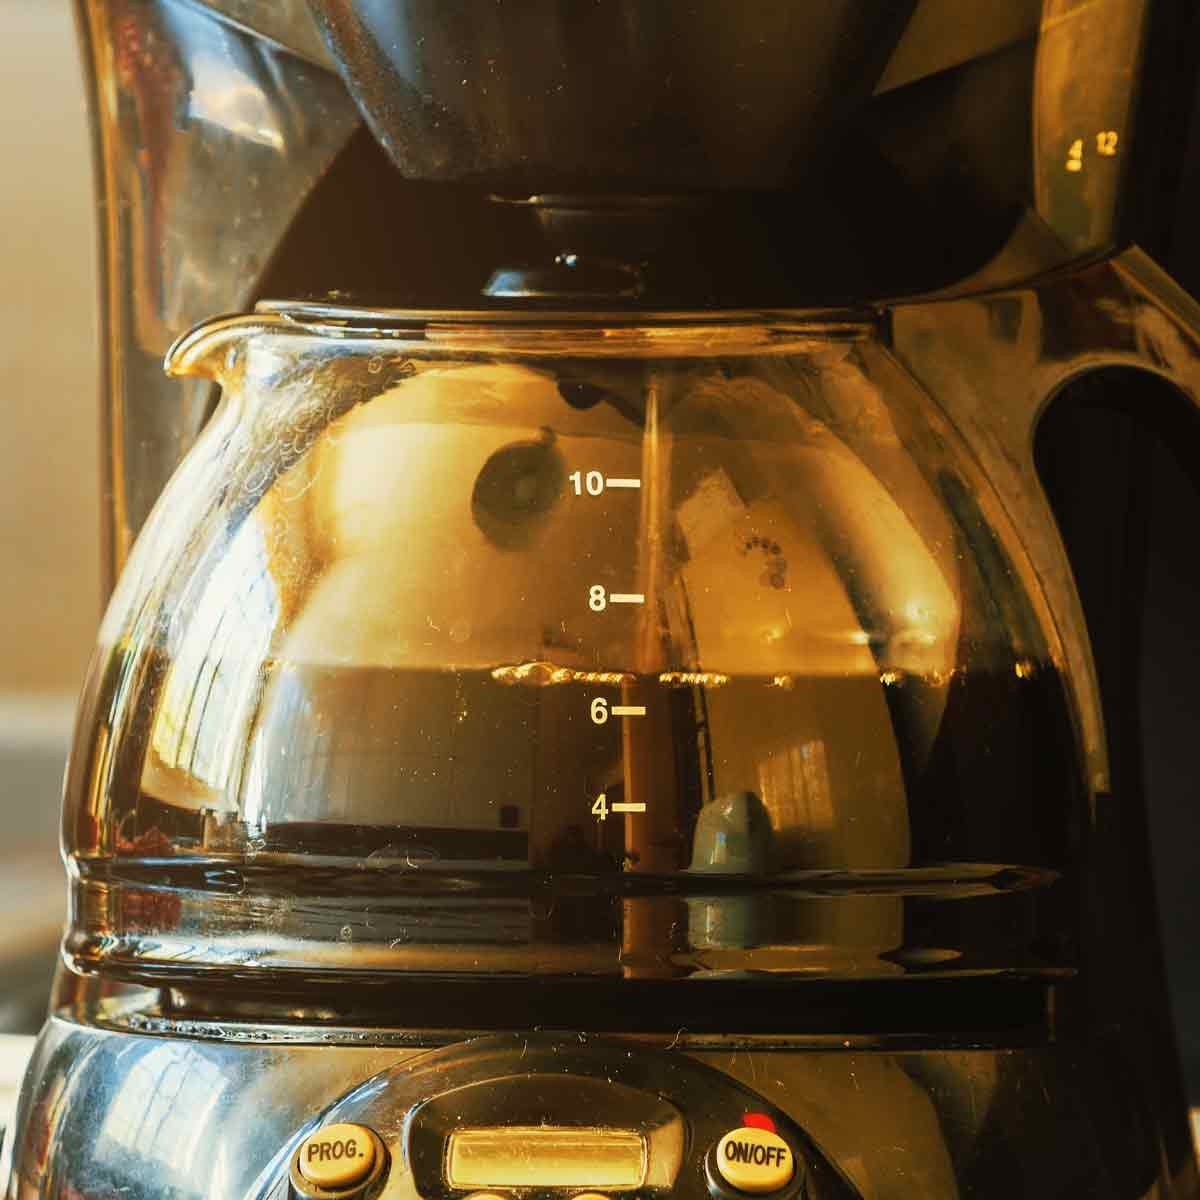 Close-up-of-electric-glass-coffee-pot-with-measurer